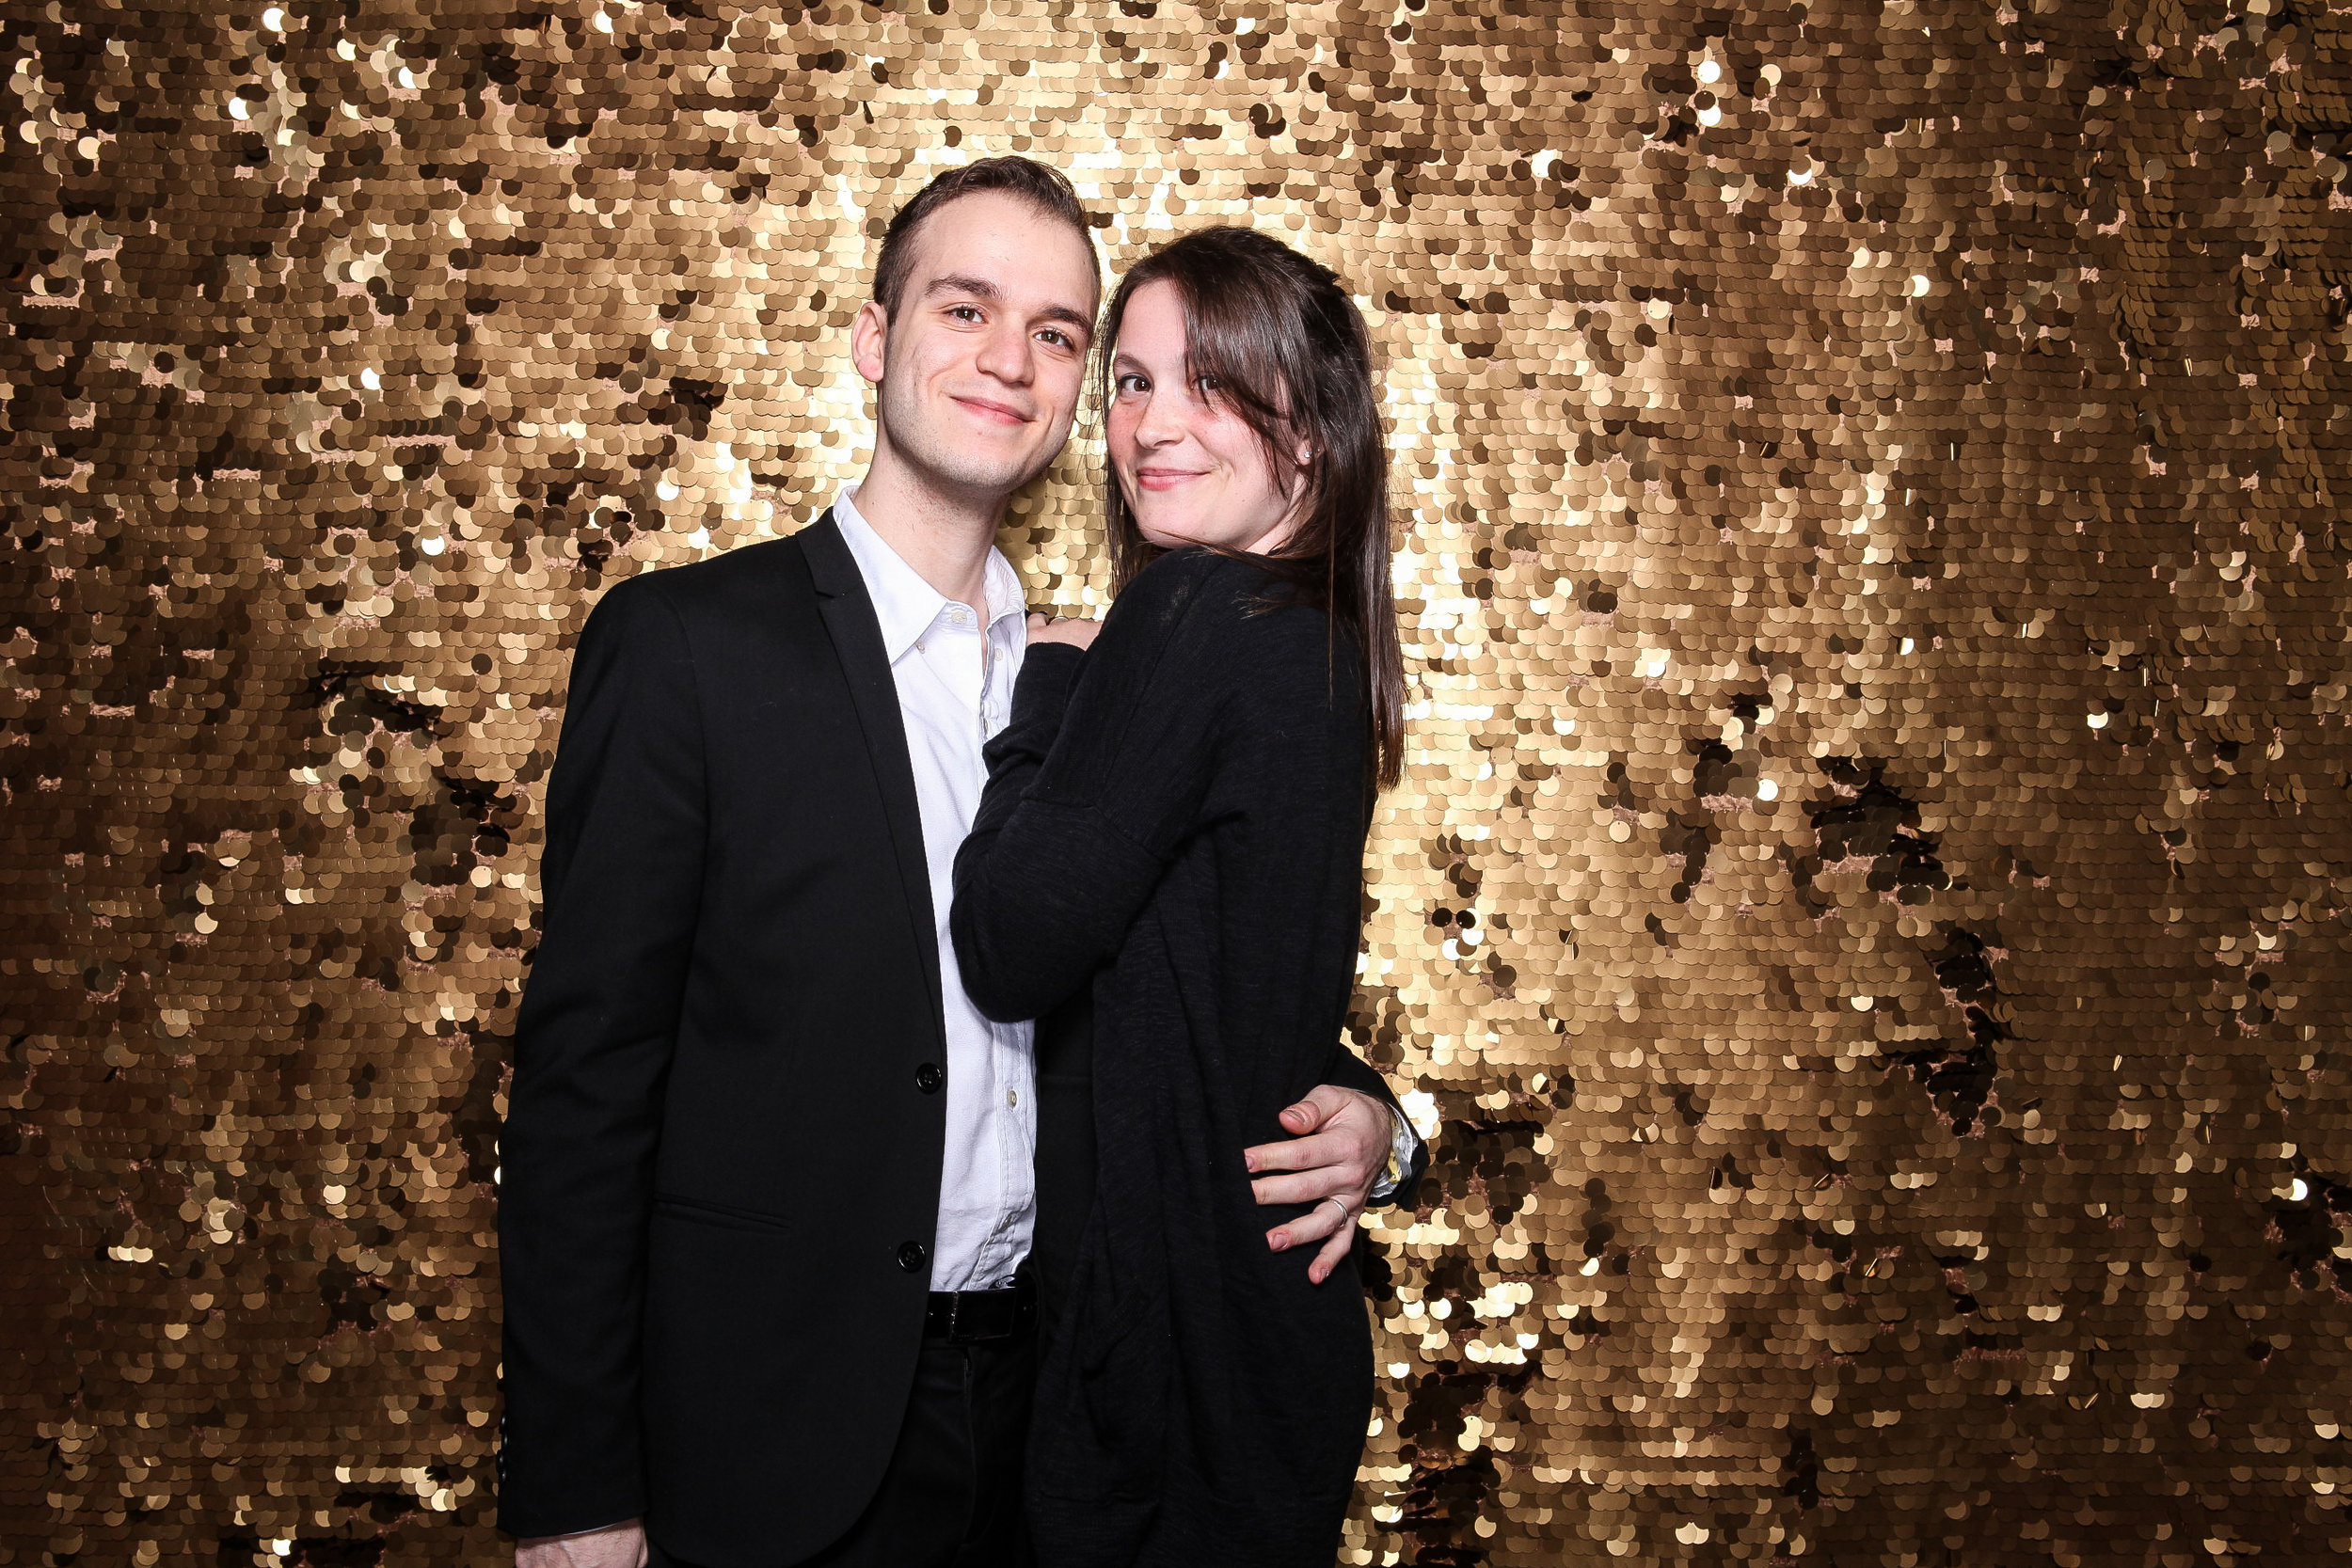 20190503_Adelphi_Senior_Formal-368.jpg